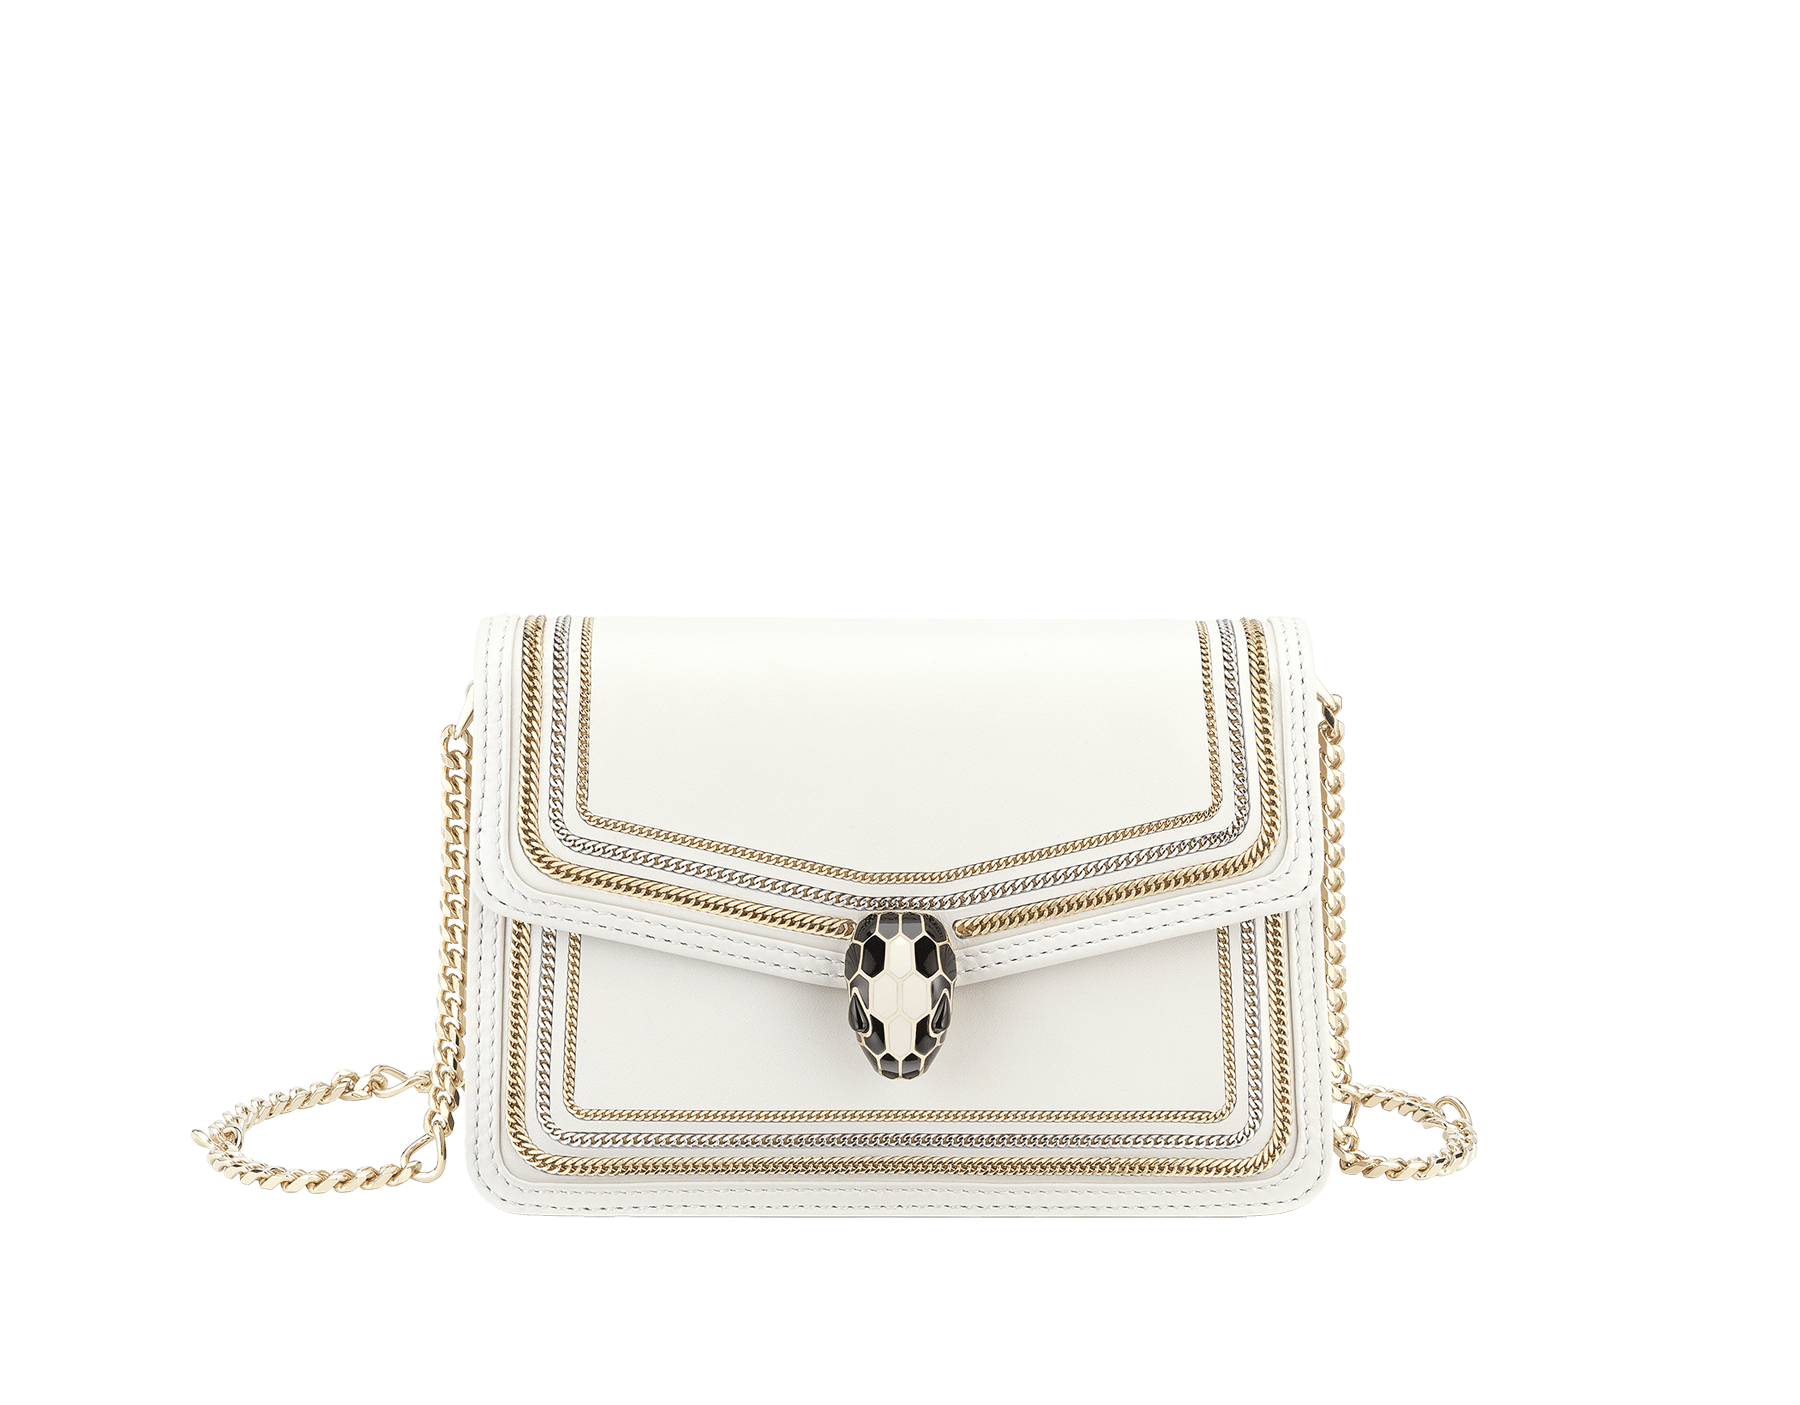 """Serpenti Diamond Blast"" crossbody mini bag in black smooth calf leather, featuring a 3-Chain motif in light gold and palladium finishing. Iconic snakehead closure in light gold plated brass enriched with black and white enamel and black onyx eyes. 987-3CFCL image 1"